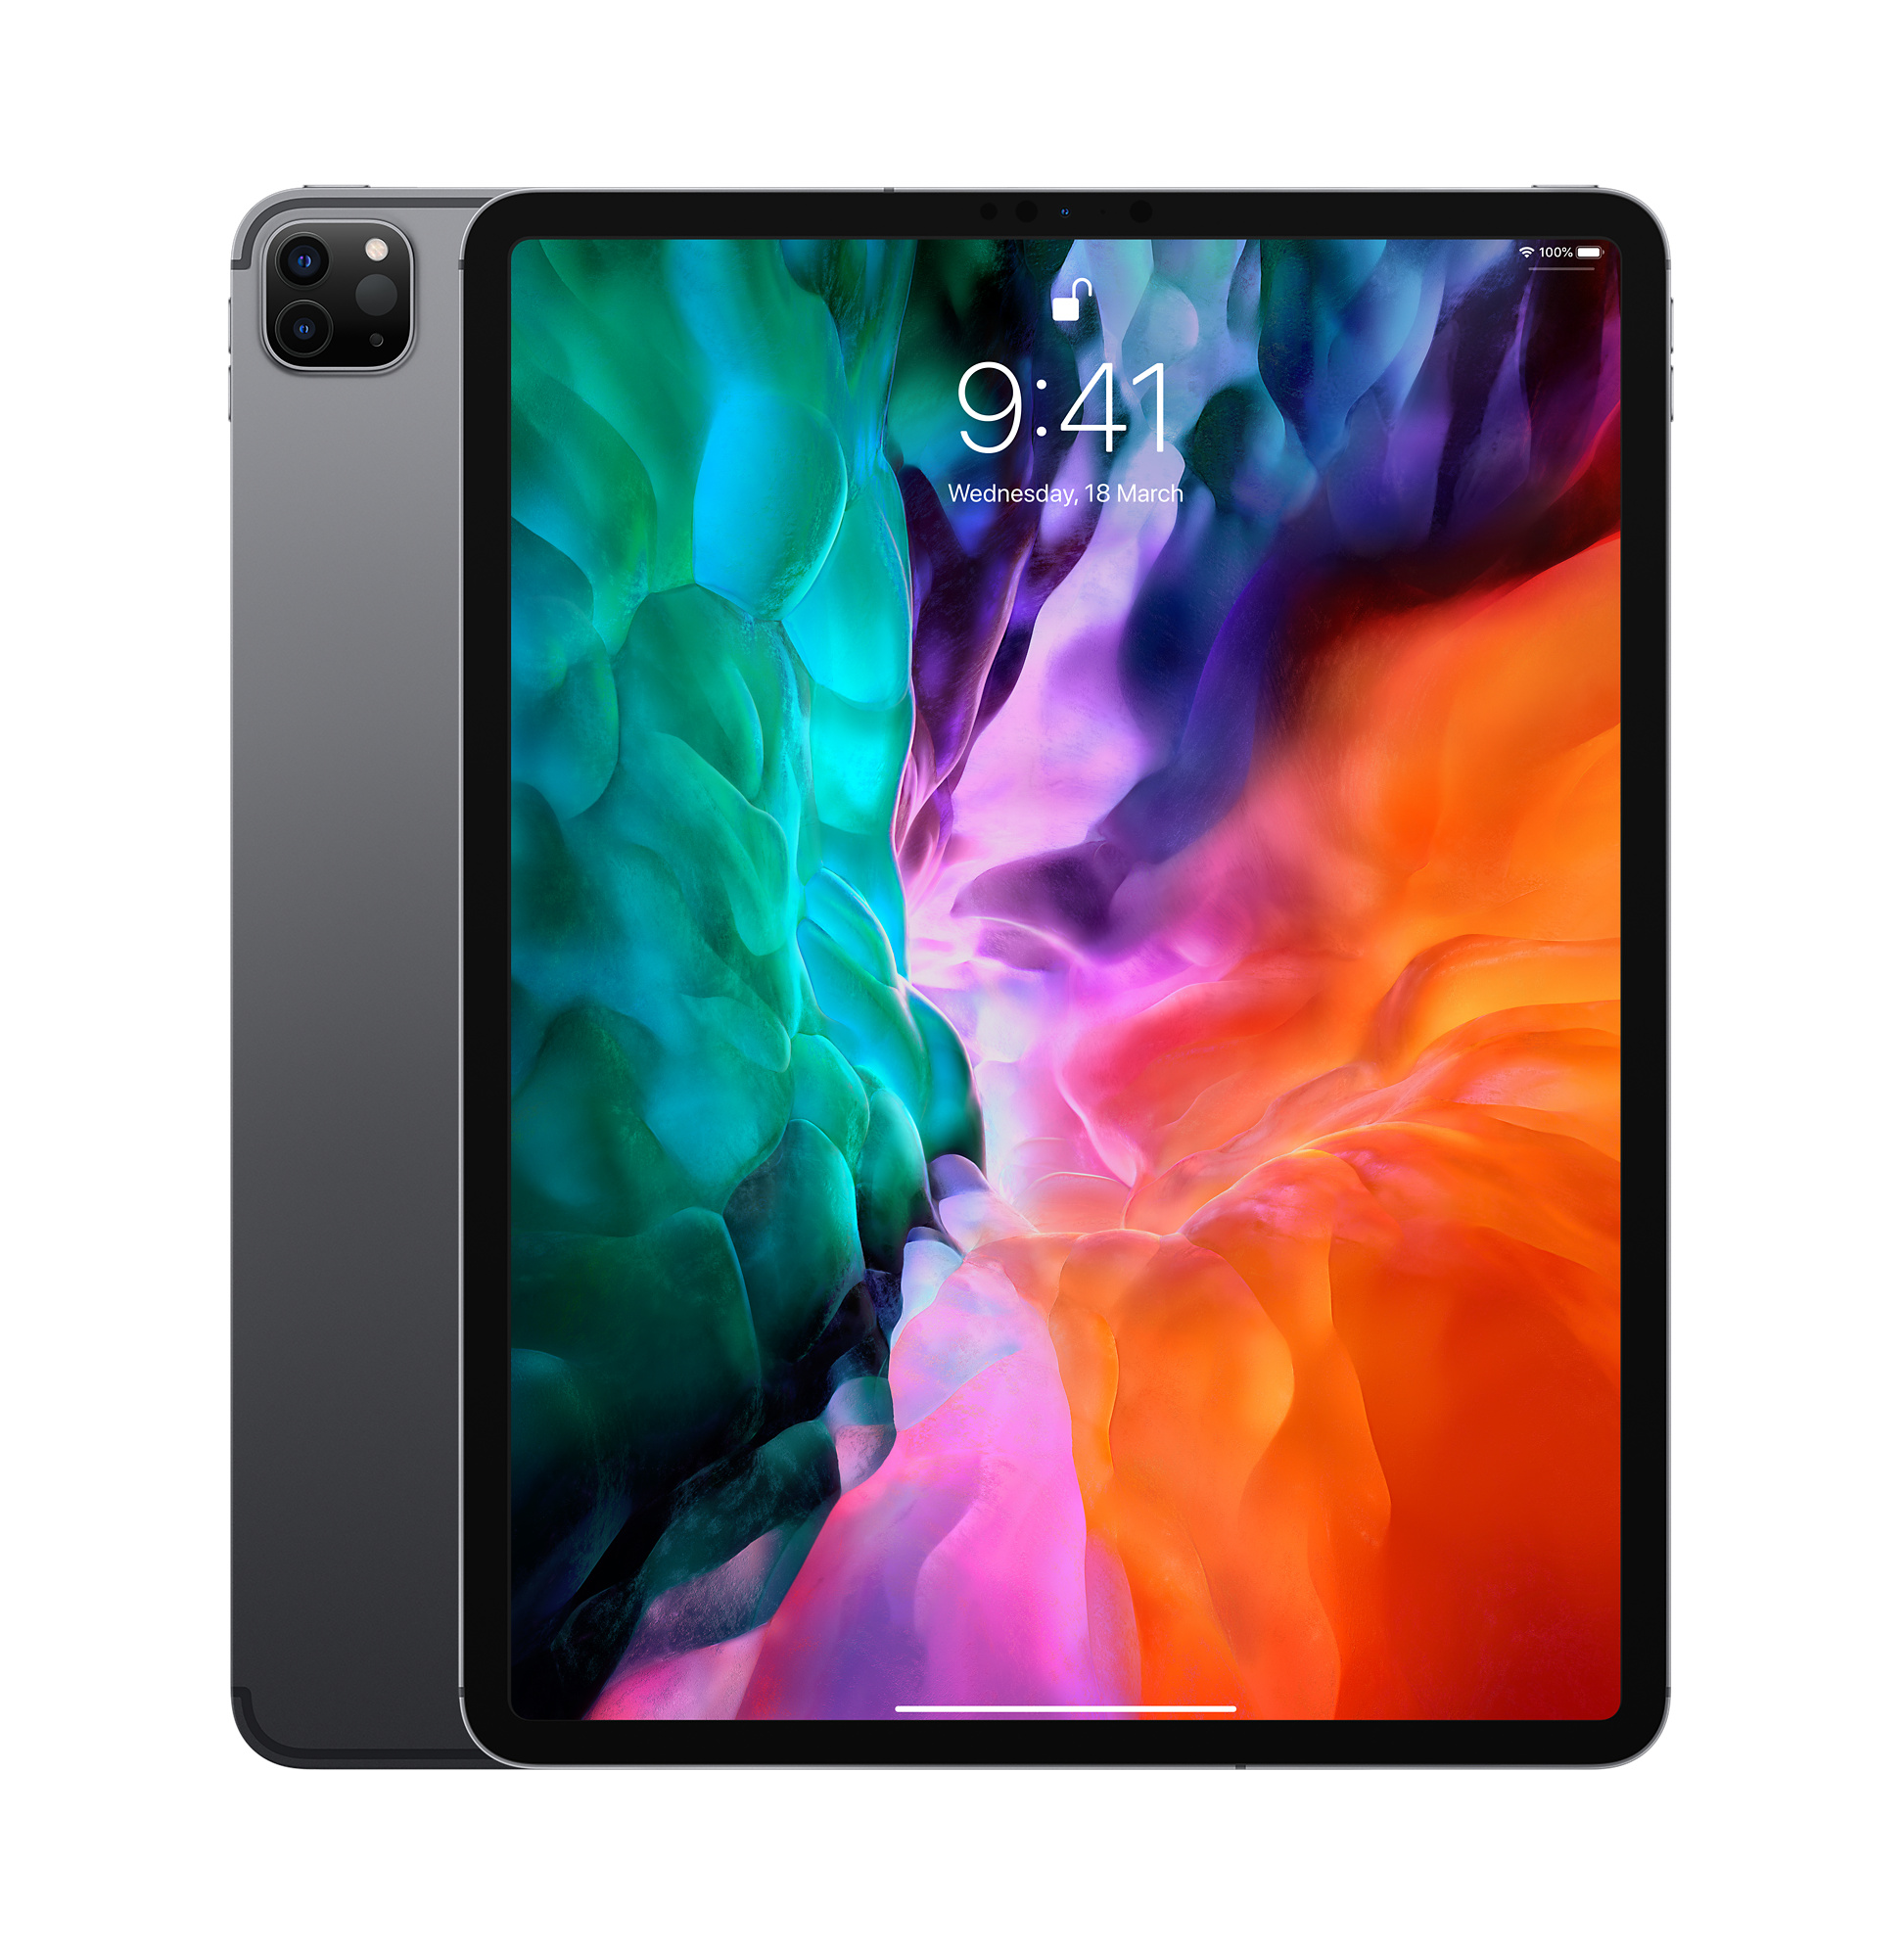 12 9 Inch Ipad Pro Wi Fi Cellular 512gb Space Gray Business Apple Hk